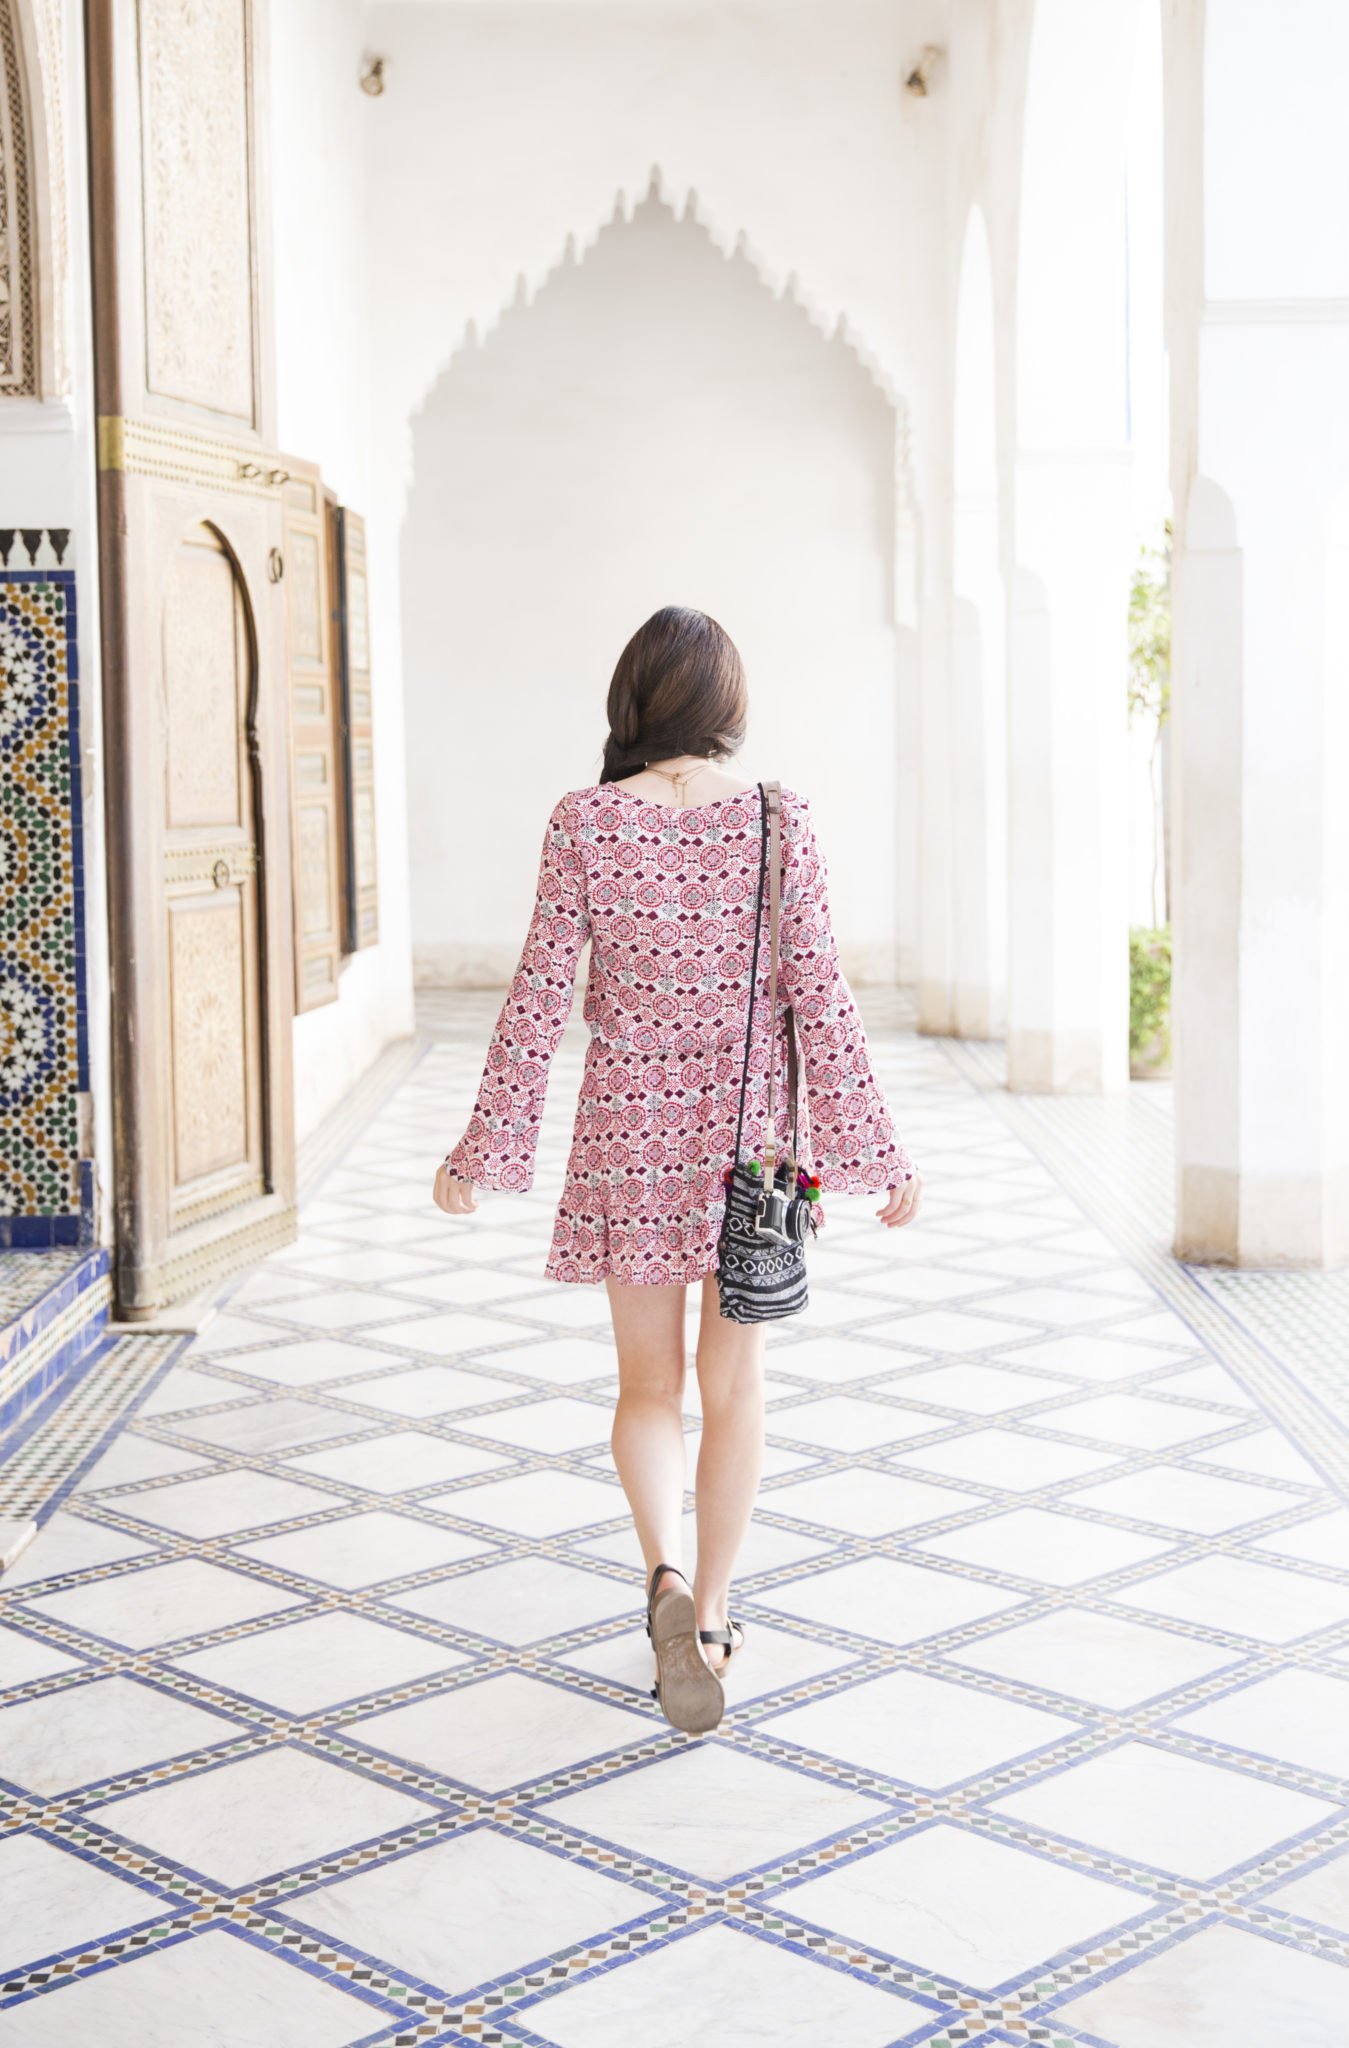 Brooke_Saward_Marrakech